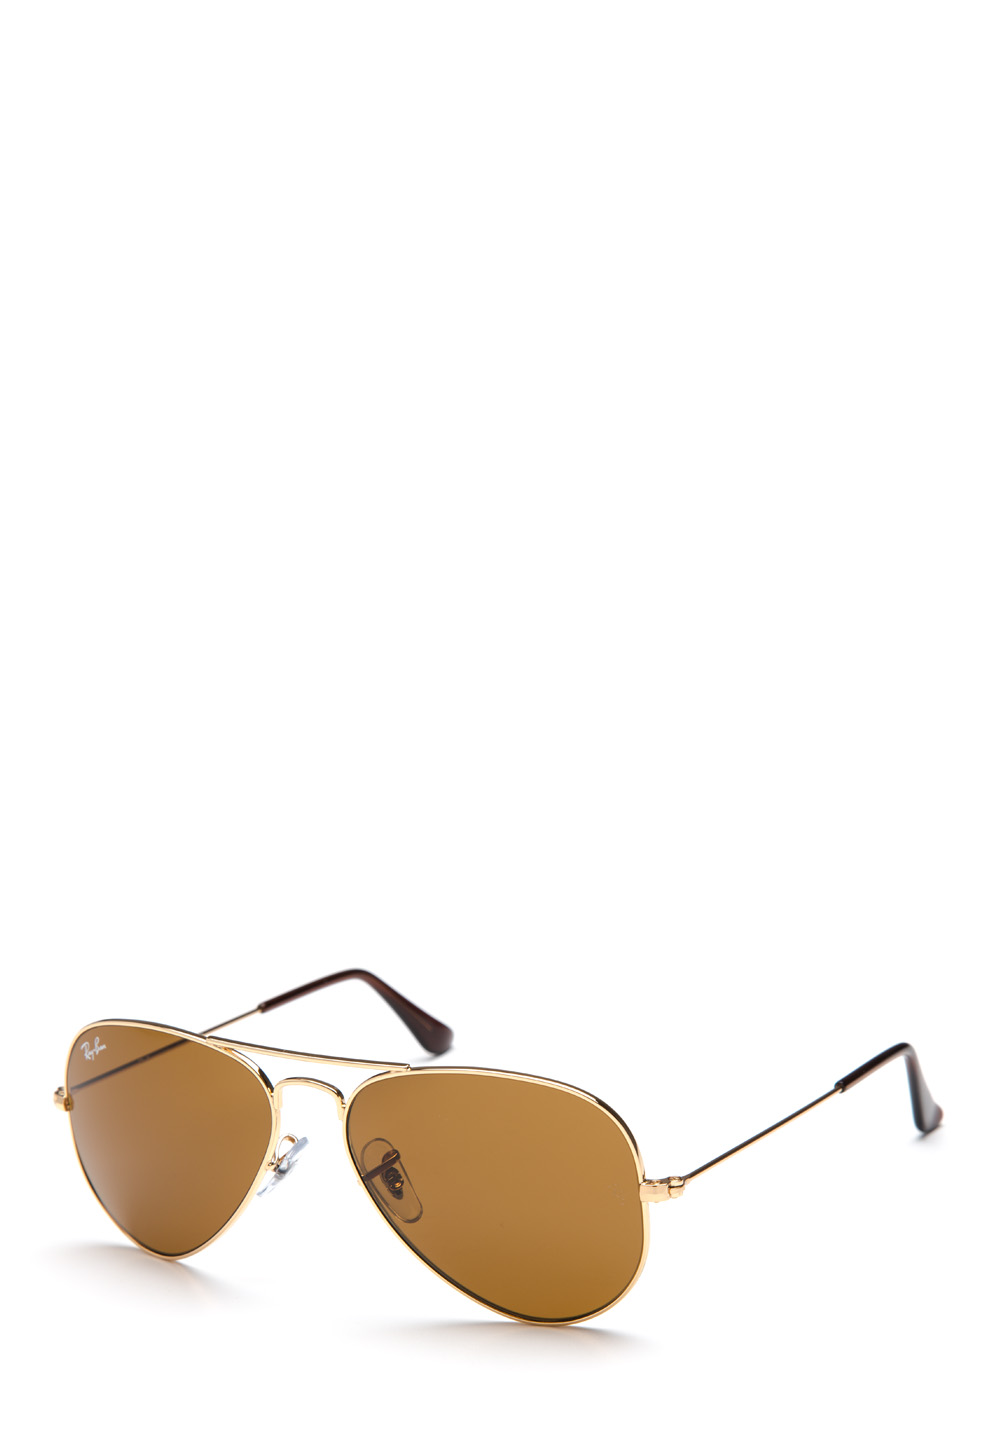 Sonnenbrille Aviator, UV 400, golden